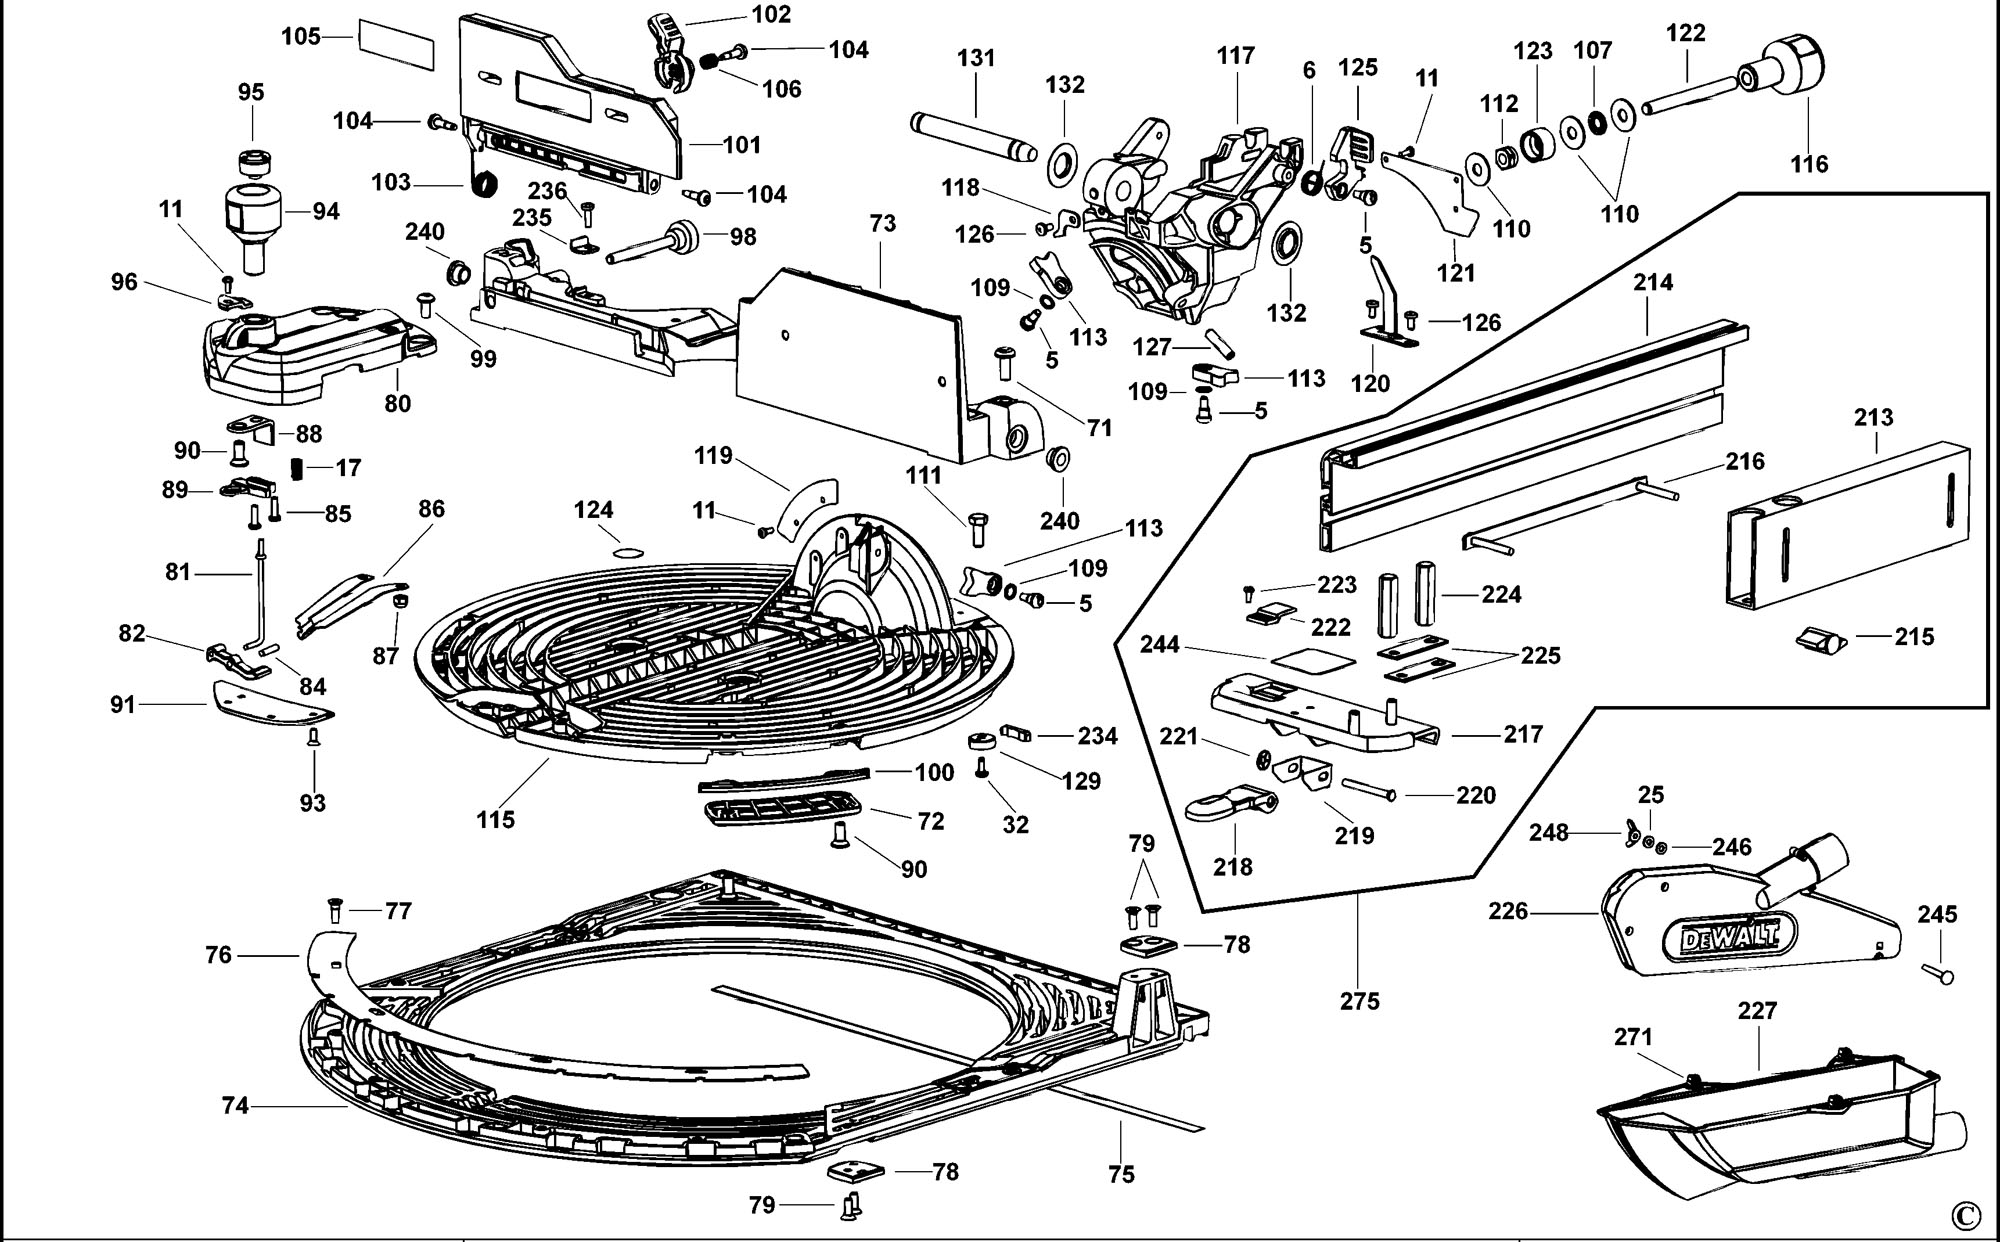 de walt power tool wiring diagrams 2000 ford f 250 power locks wiring diagrams